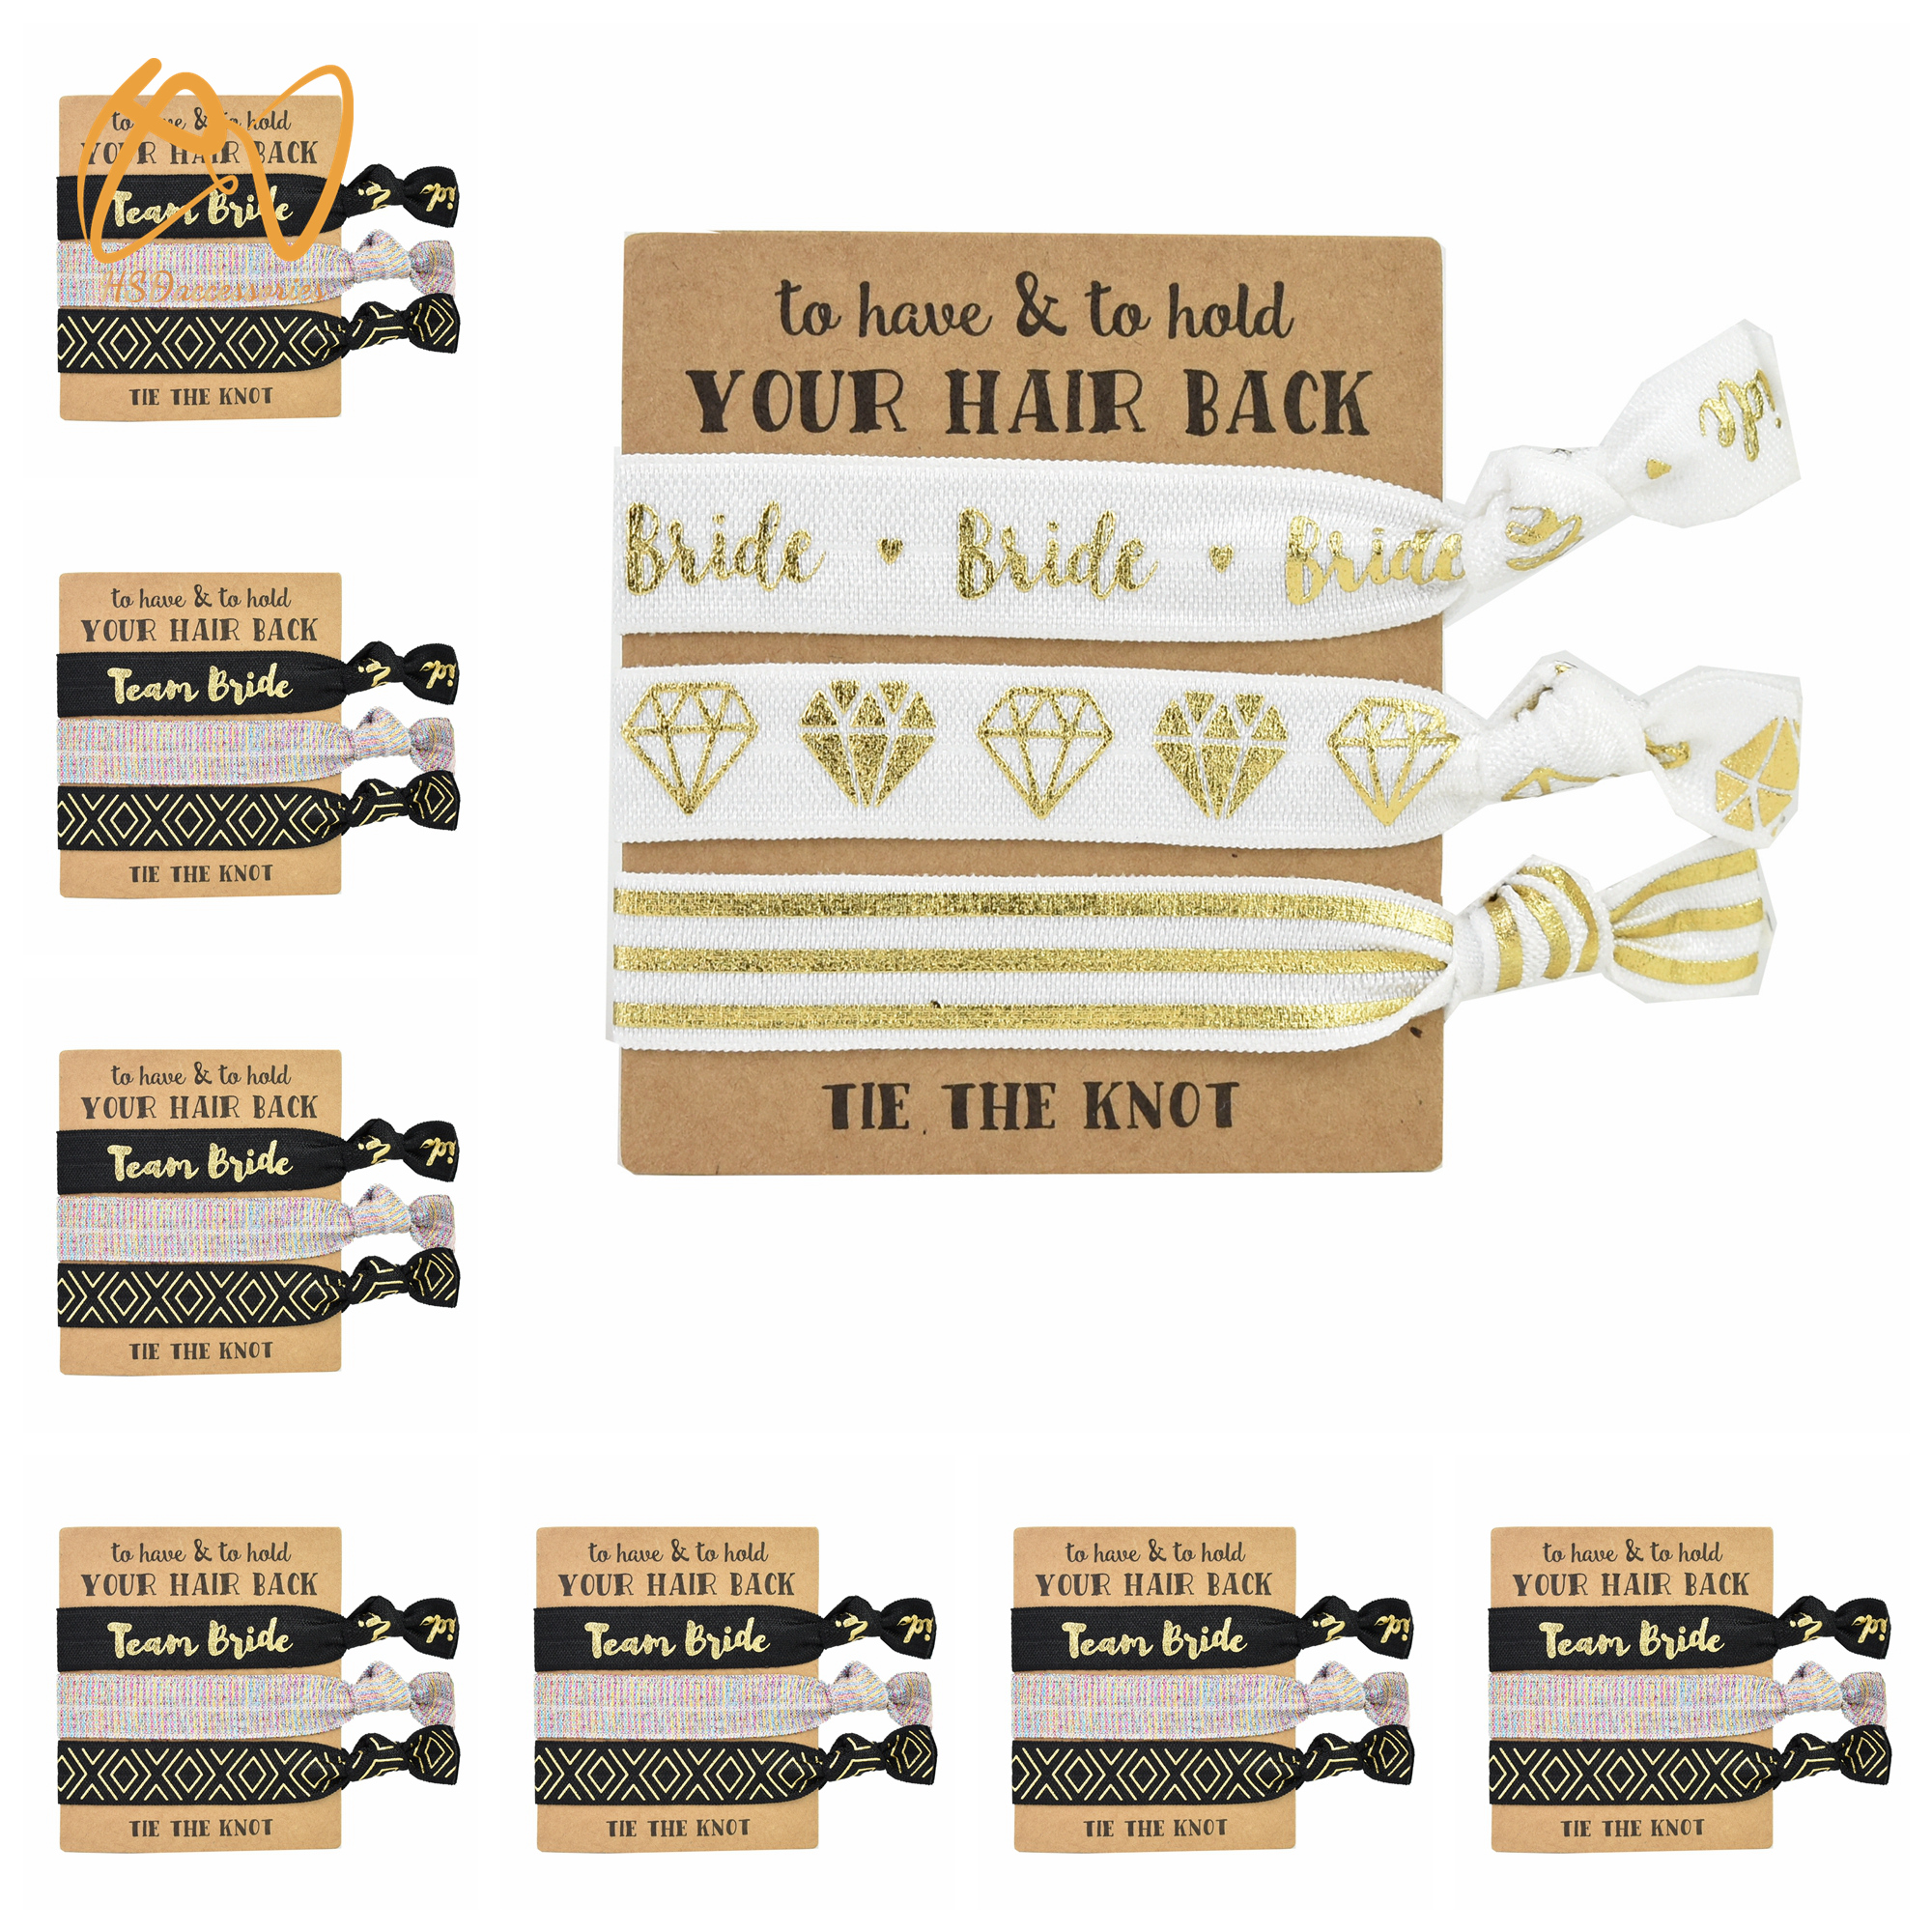 Hsd Accessories Designs 11Pack Of Bachelorette Party Favors 10 Bride Tribe Hair Ties And 1 Bride To Be Hair Tie  Bachelorette